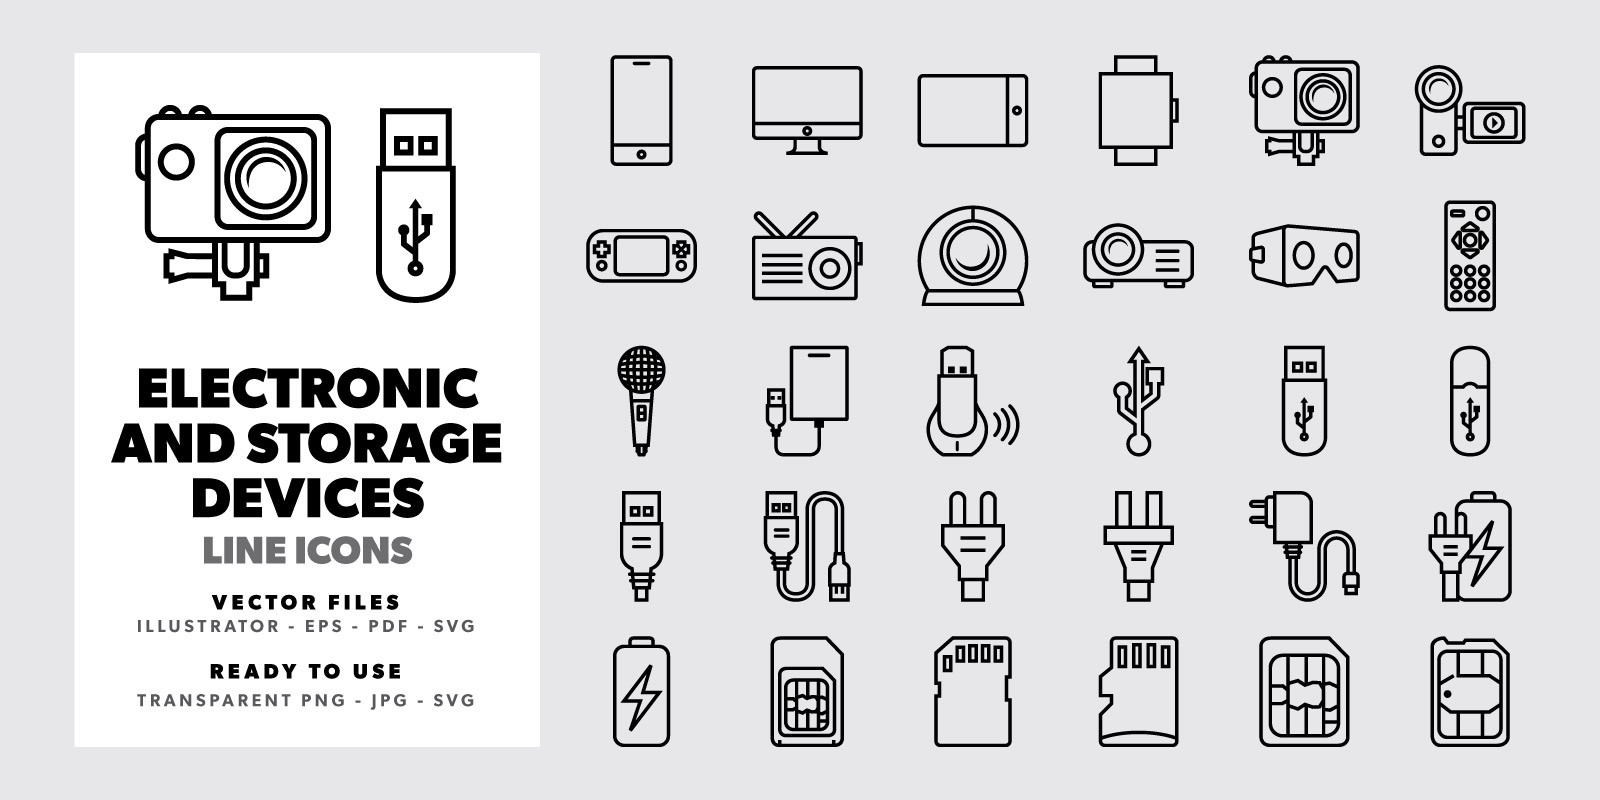 Electronic and Storage Devices - Line Icons